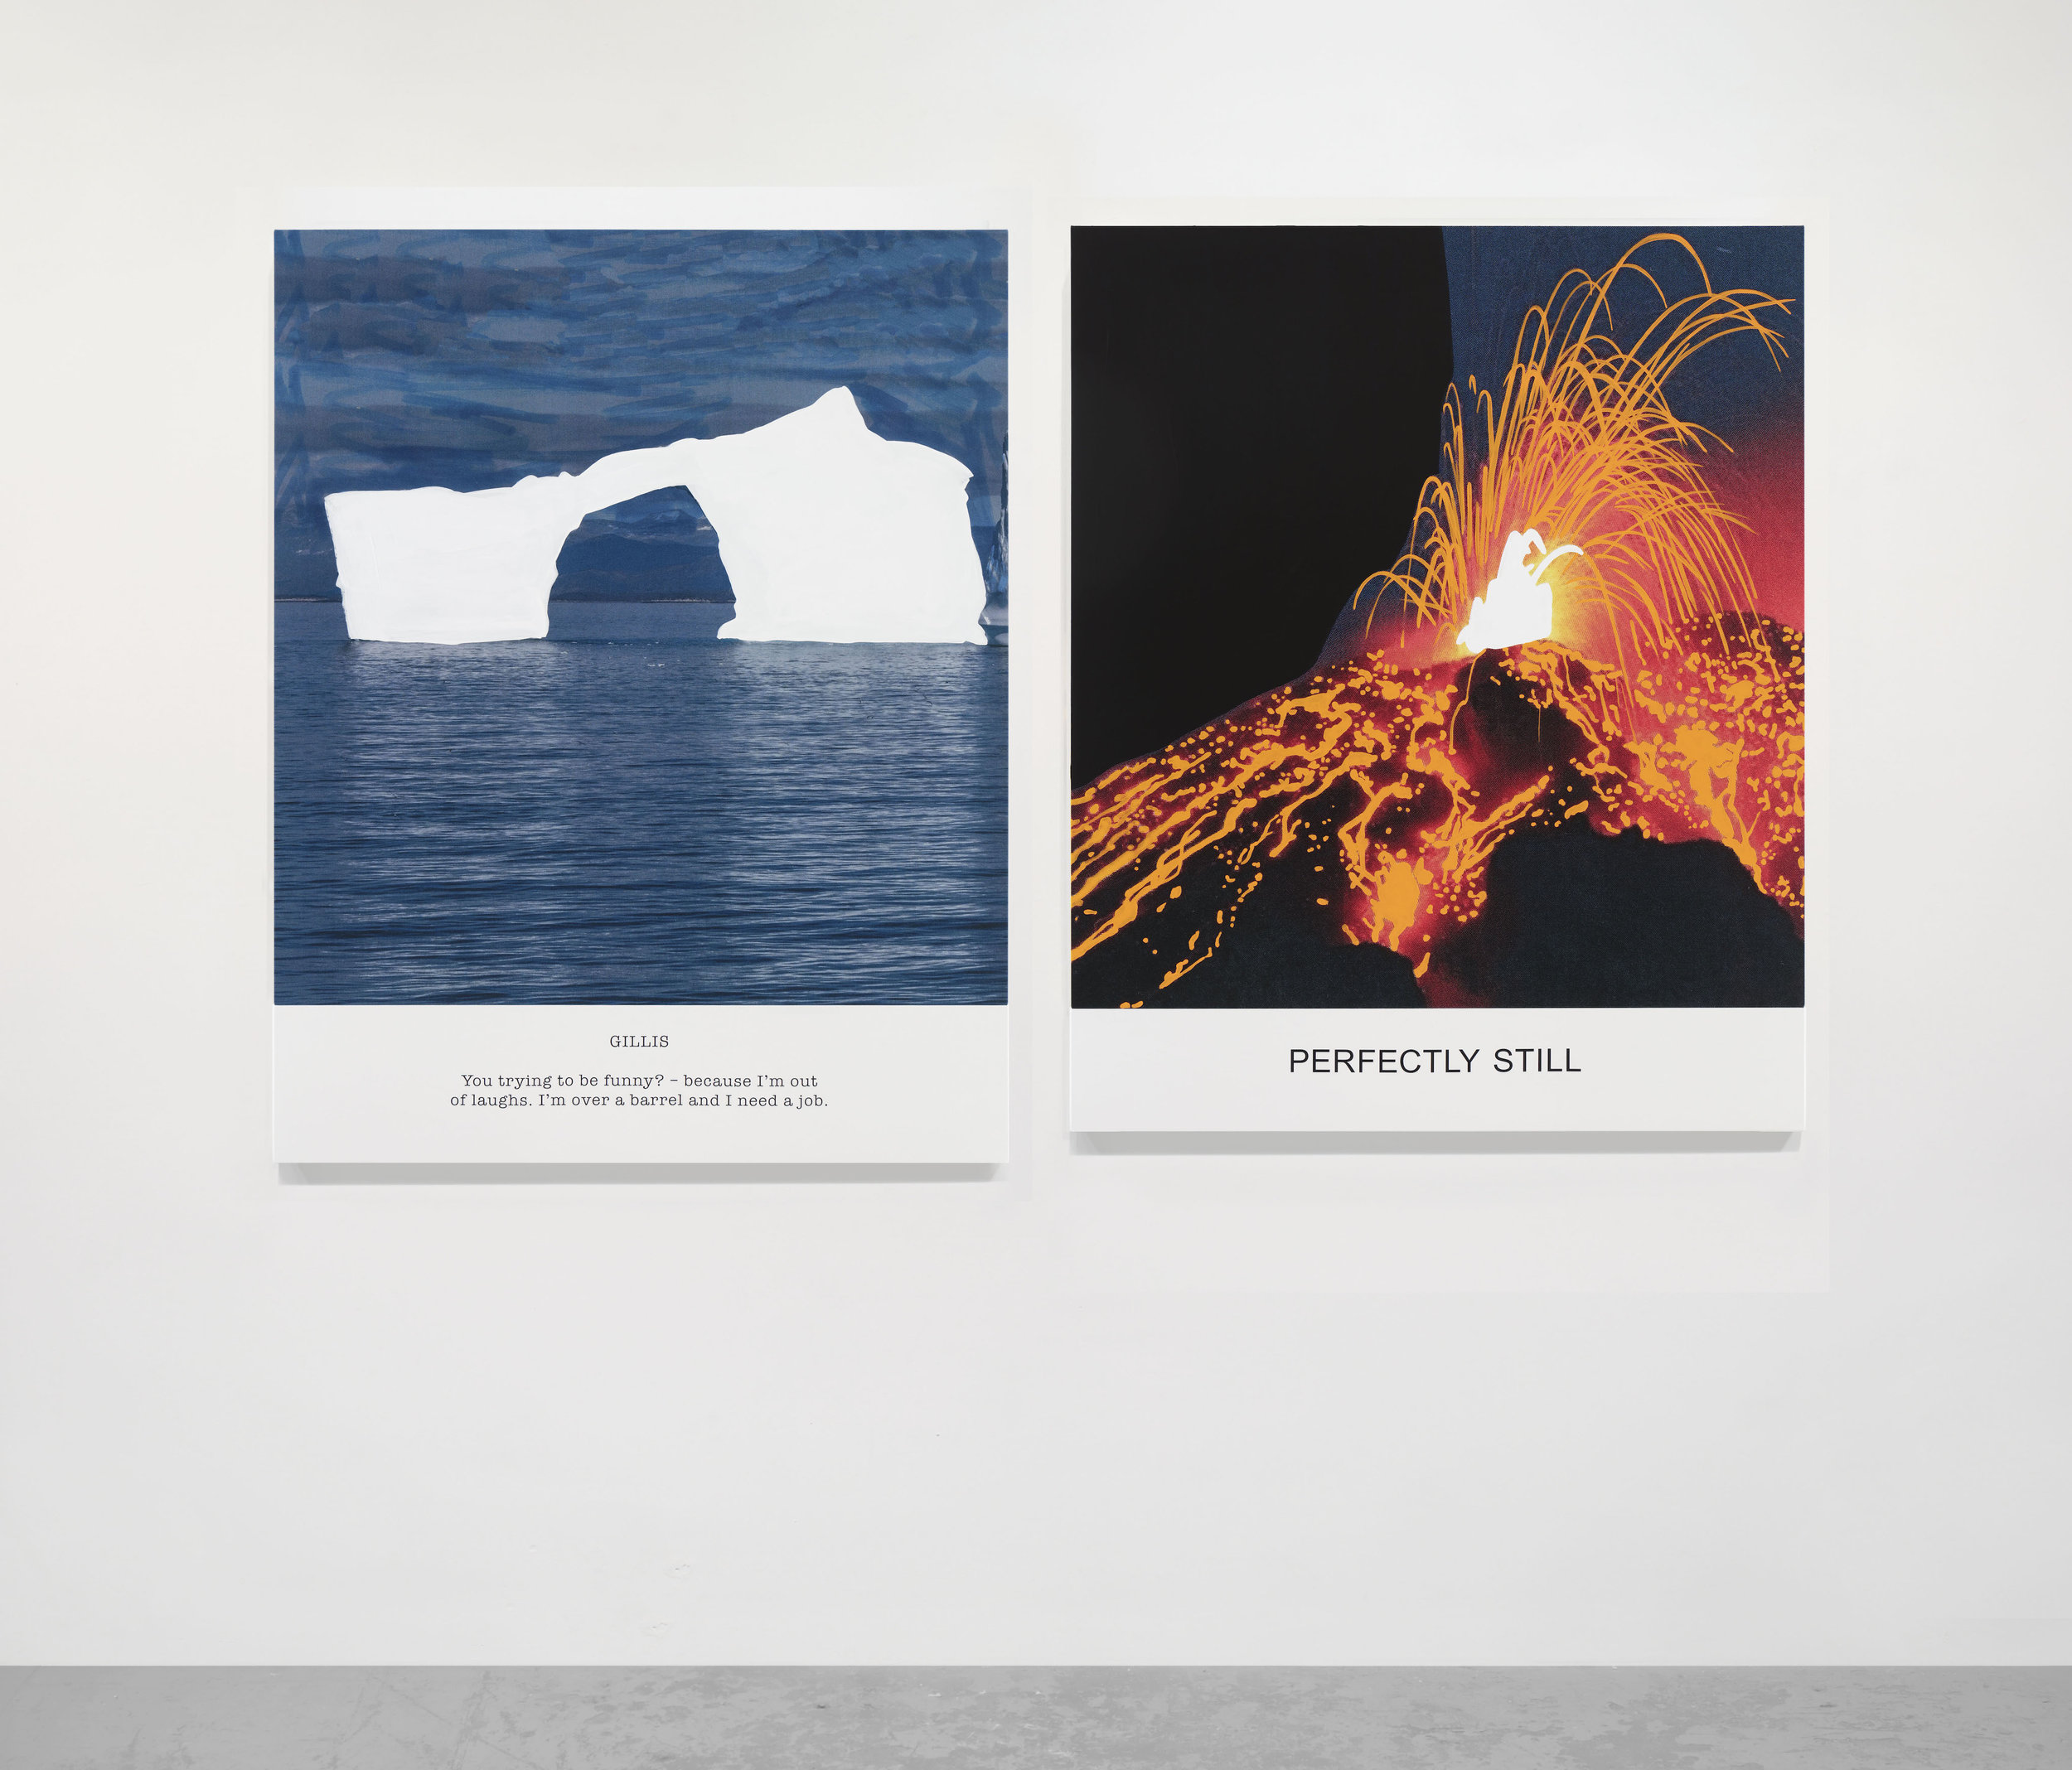 John Baldessari, Hot & Cold Series: GILLIS You trying to be funny?.. PERFECTLY STILL, 2018. Varnished inkjet prints on canvas with acrylic paint. Iceberg: 57 3/8 x 45 x 1 1/2 in. (145.7 x 114.3 x 3.8 cm). Volcano: 55 1/2 x 45 x 1 1/2 in. (141 x 114.3 x 3.8 cm) (22039). Courtesy of Marian Goodman Gallery.